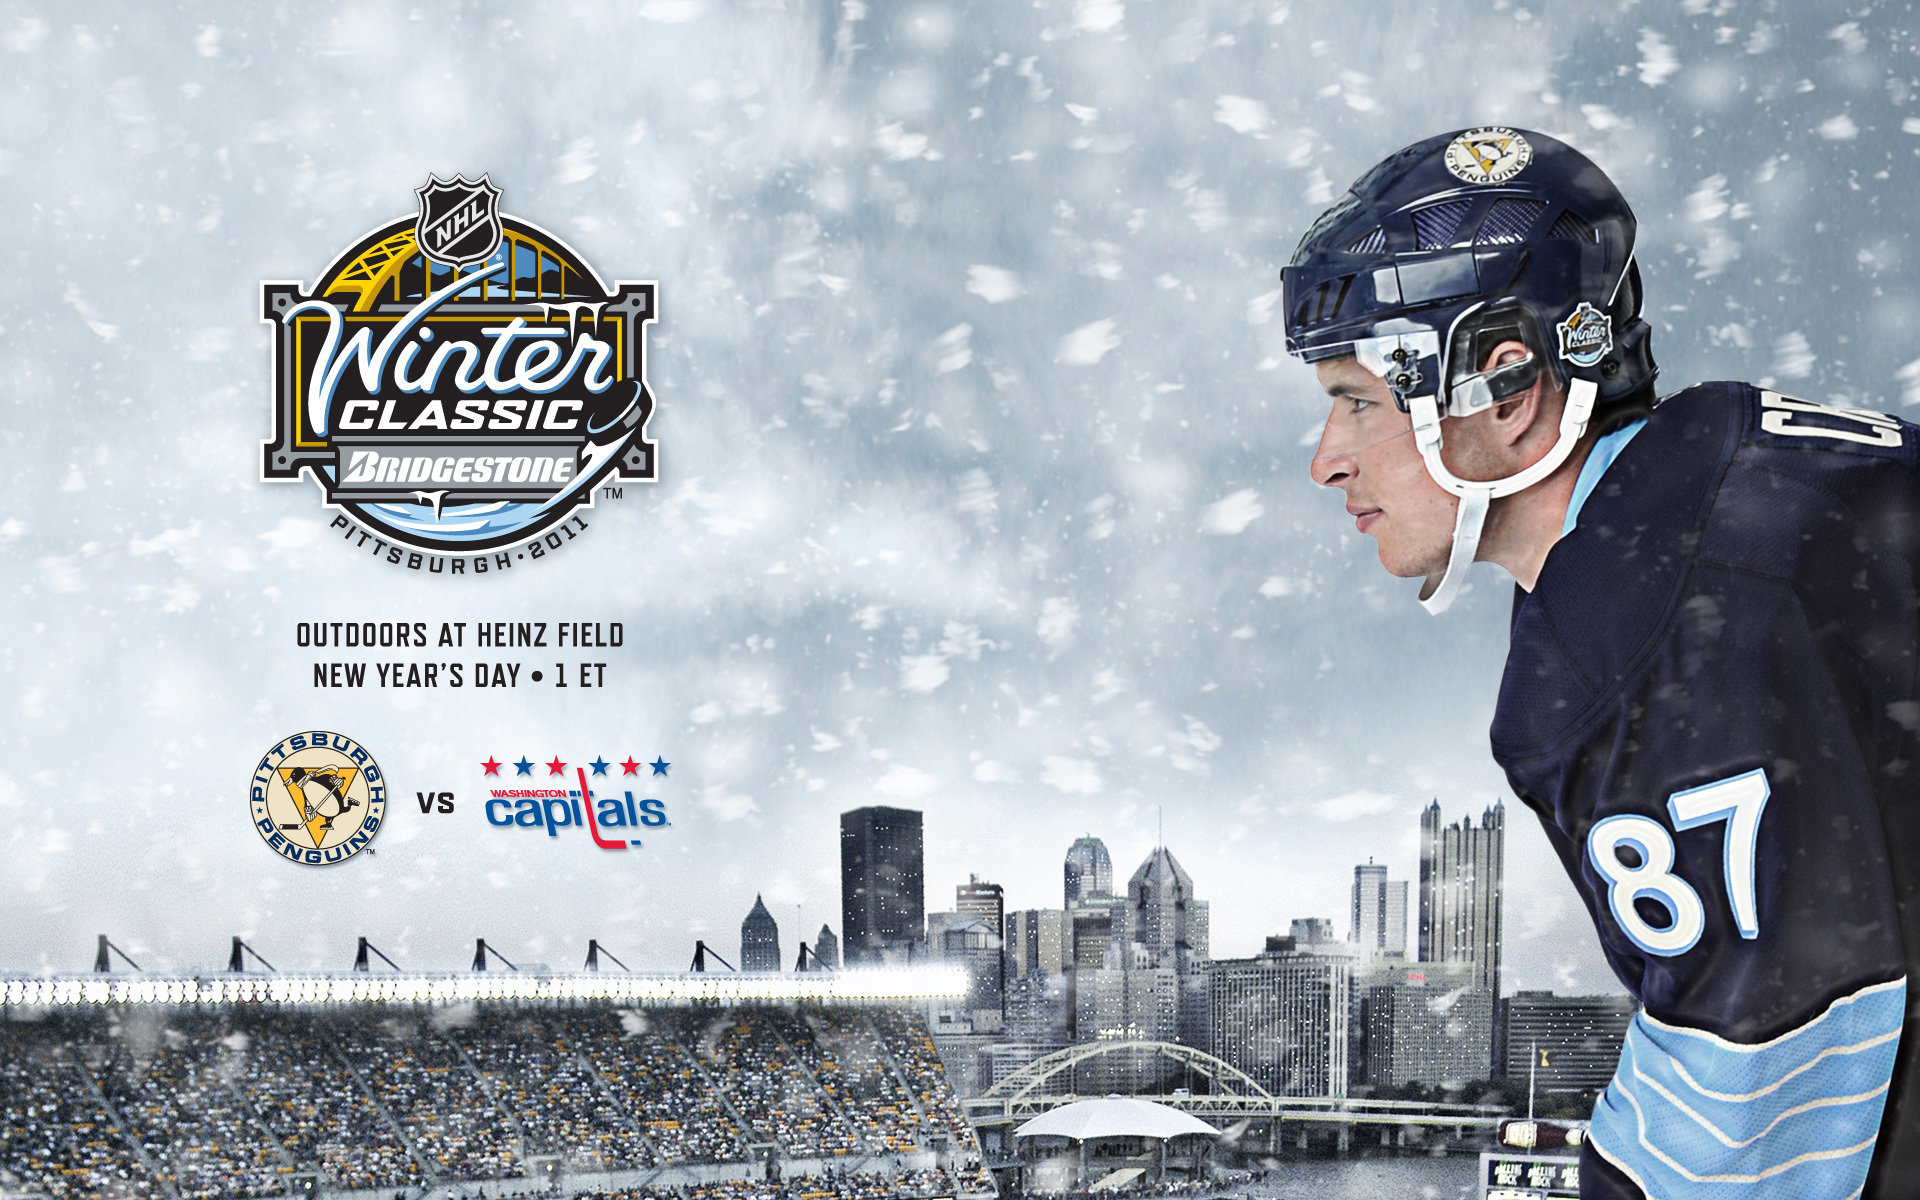 Sidney Crosby images 2011 Winter Classic   Sidney Crosby 1920x1200